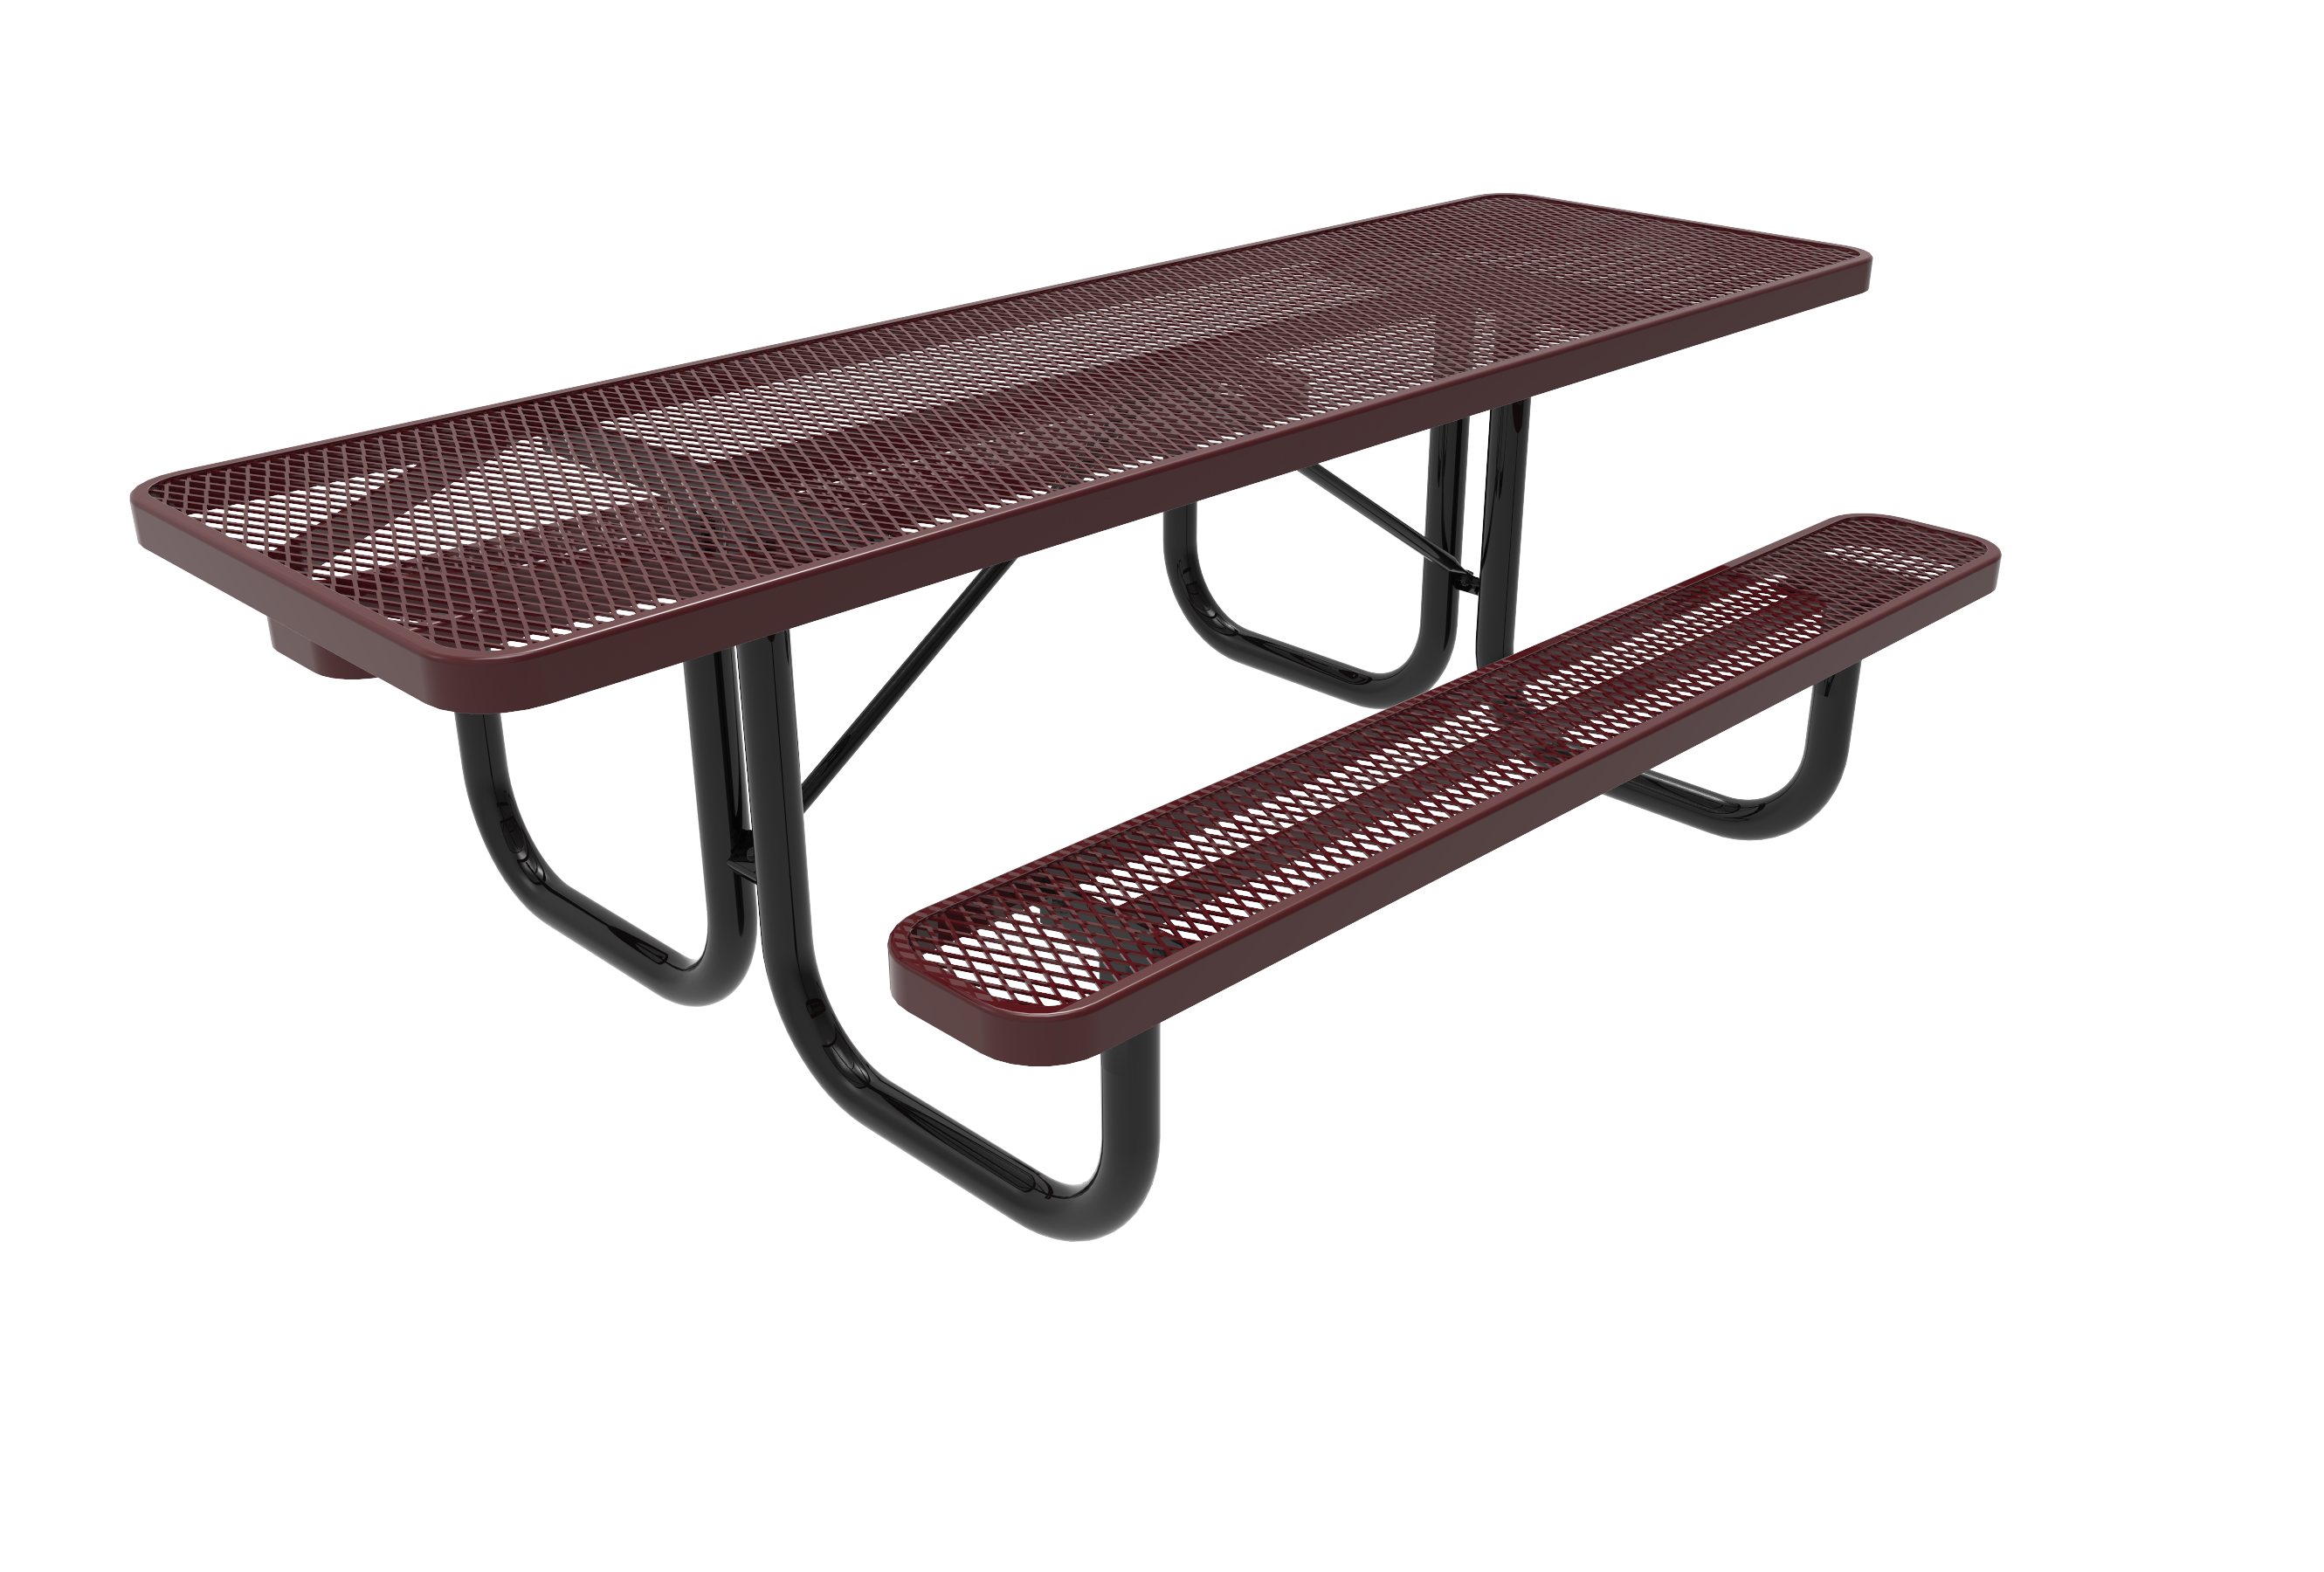 8' Lexington Rectangular Portable Table